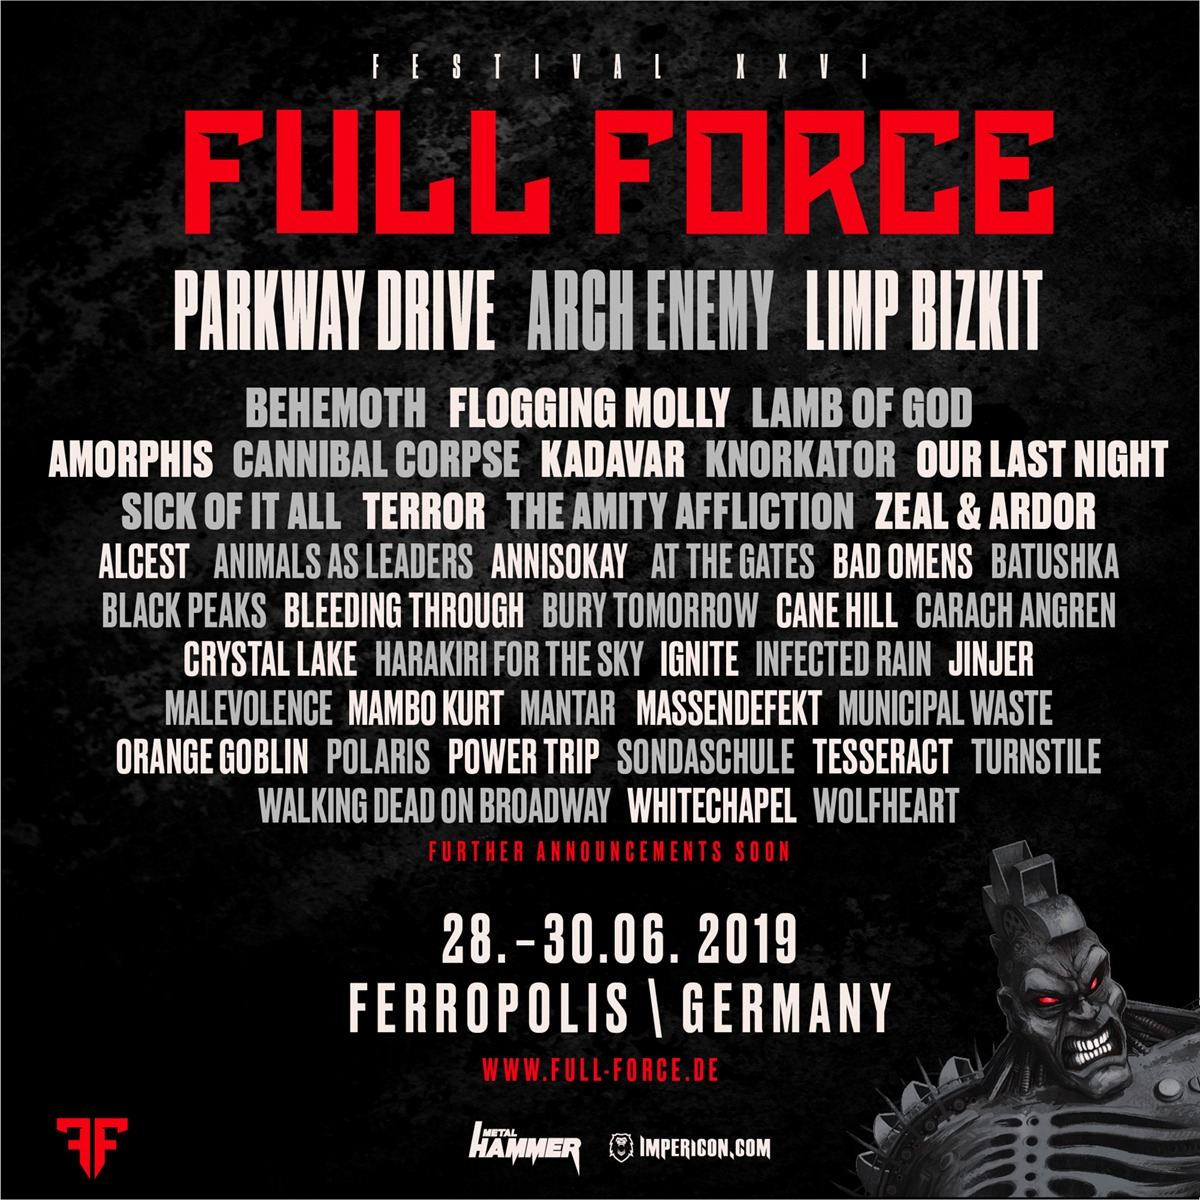 Full Force 2019 / With Full Force 2019 / #fullforcefest